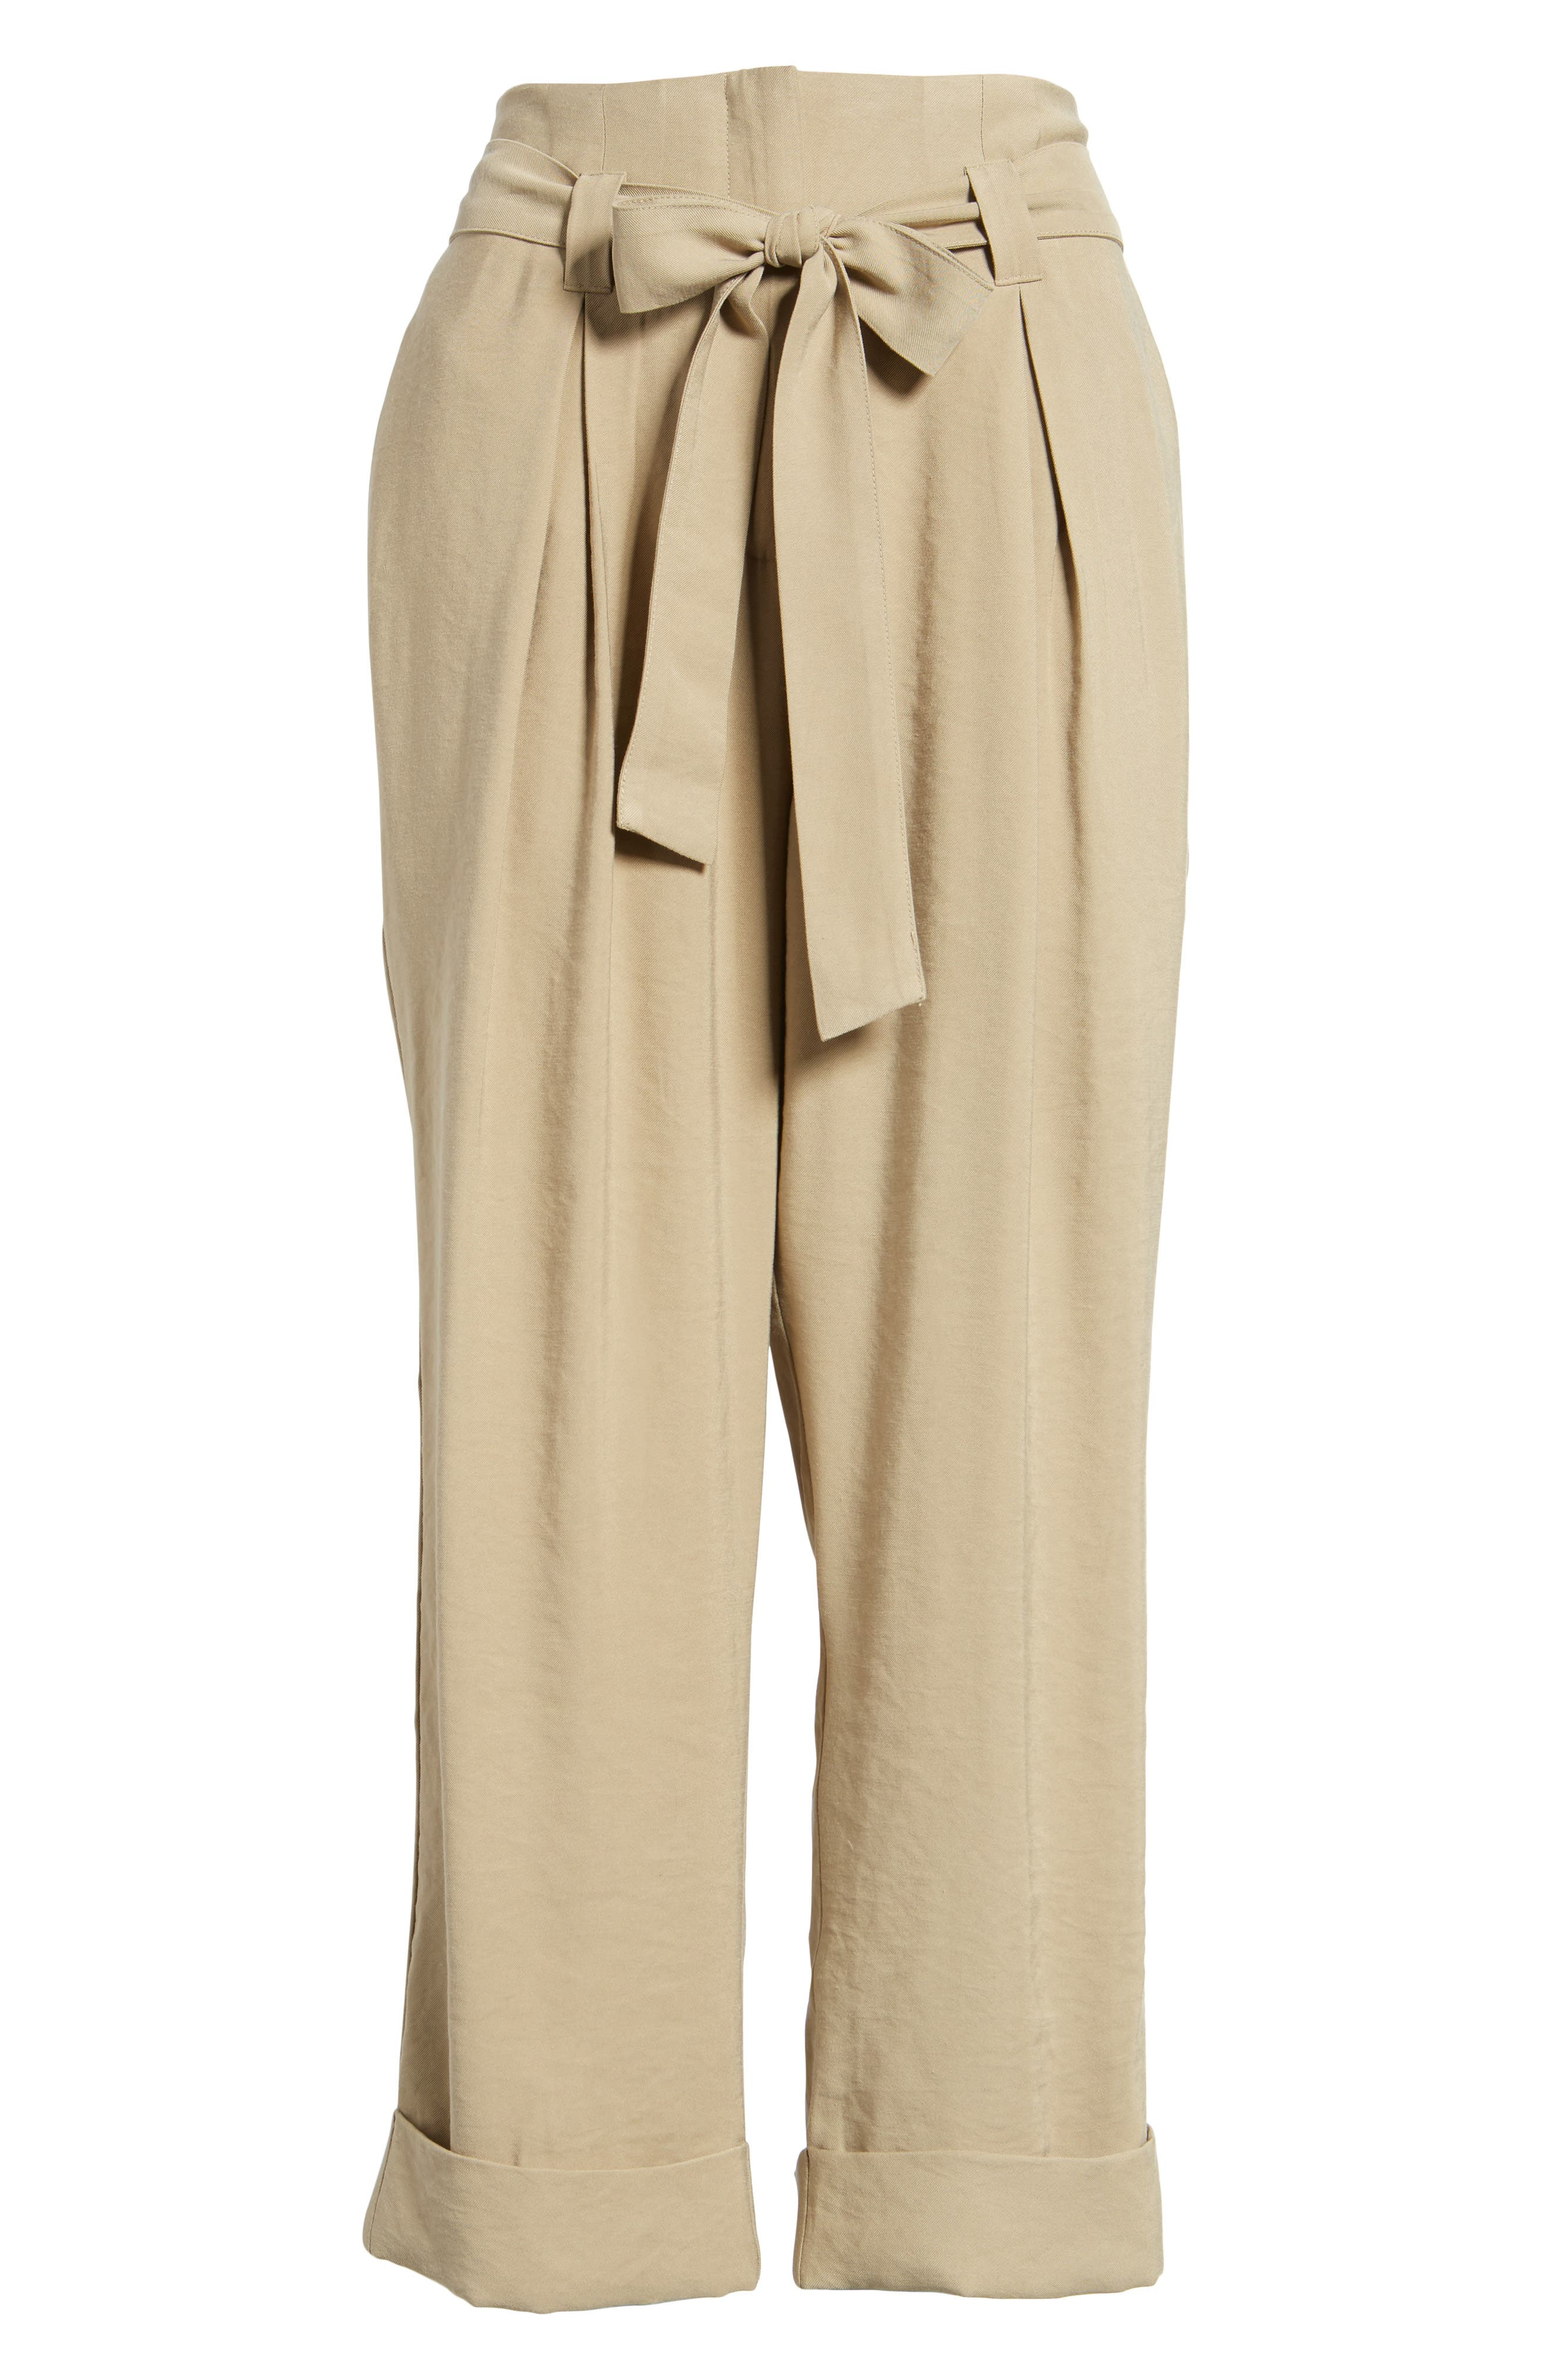 High Waist Tie Front Cropped Pants,                             Alternate thumbnail 6, color,                             287